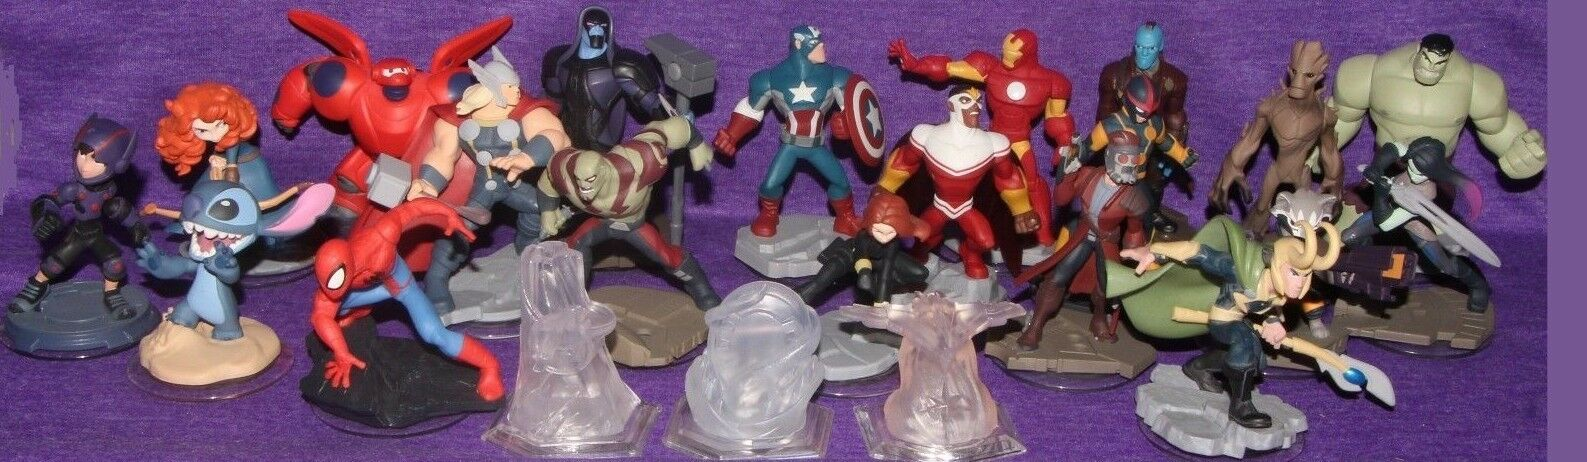 DIsney Infinity 2.0 Marvel Originals Figures You Pick Free Ship Buy 4 get 1 Free